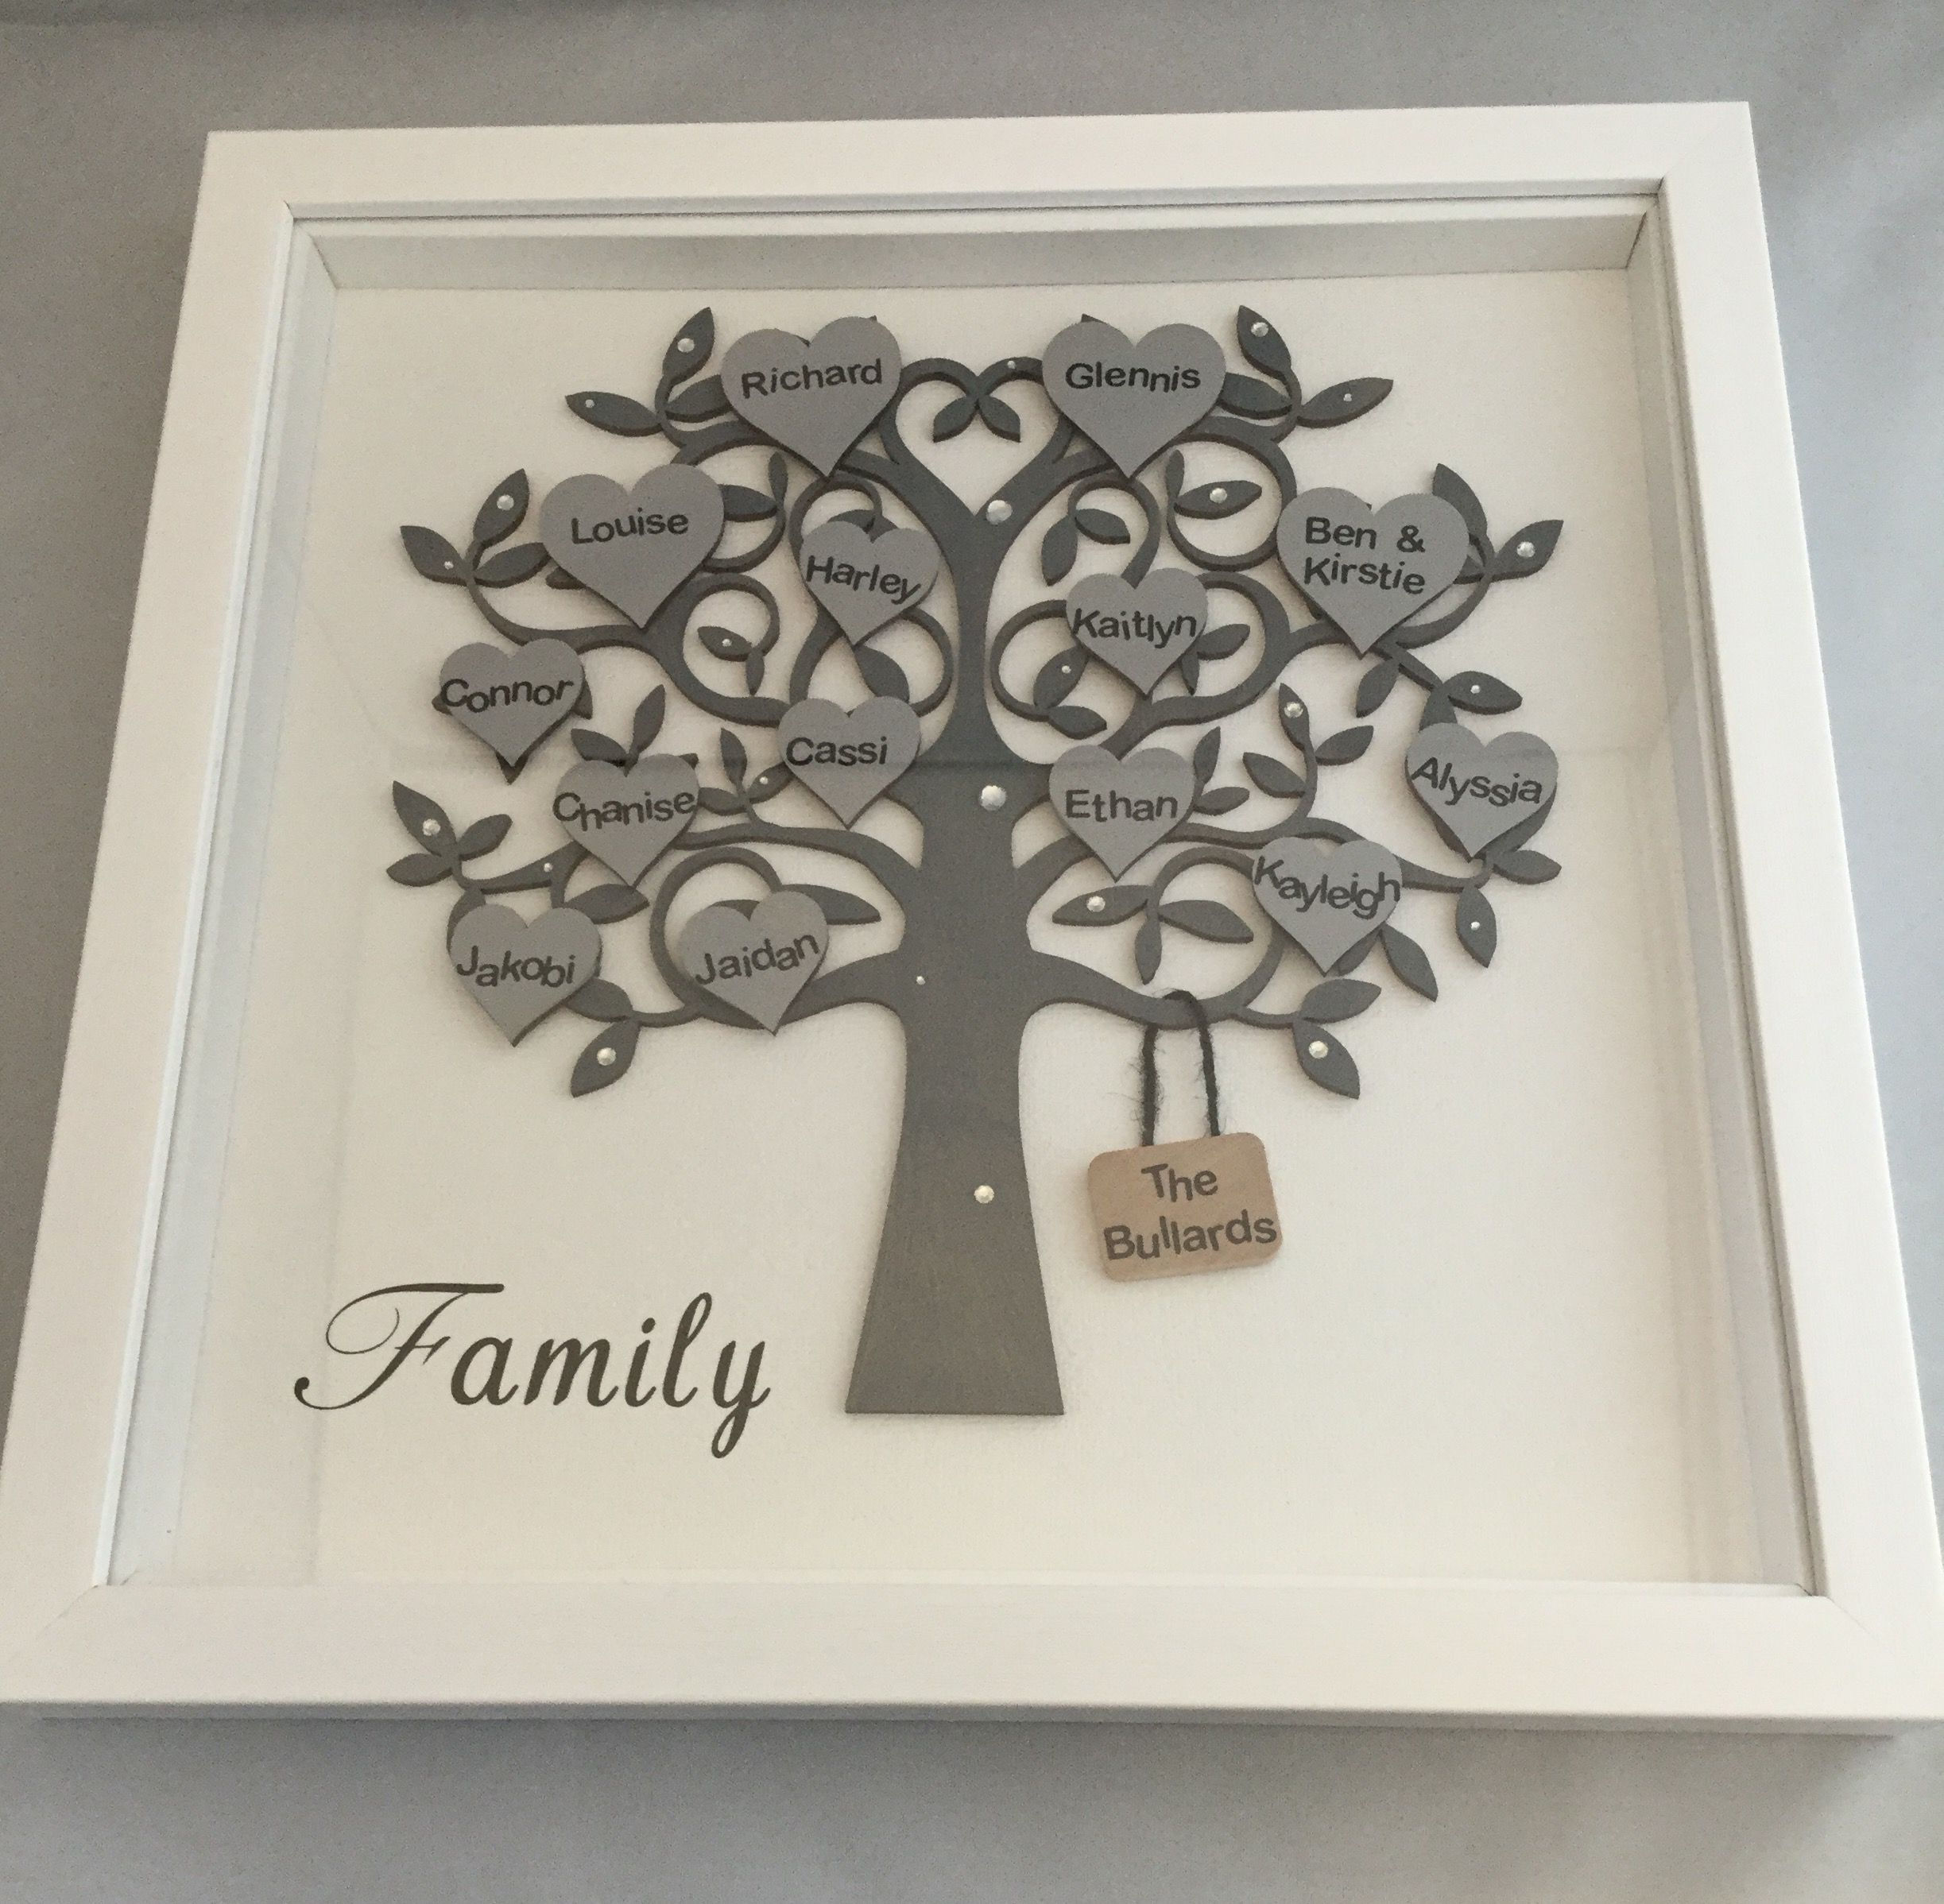 Explore Family Tree Frame, Family Trees And More